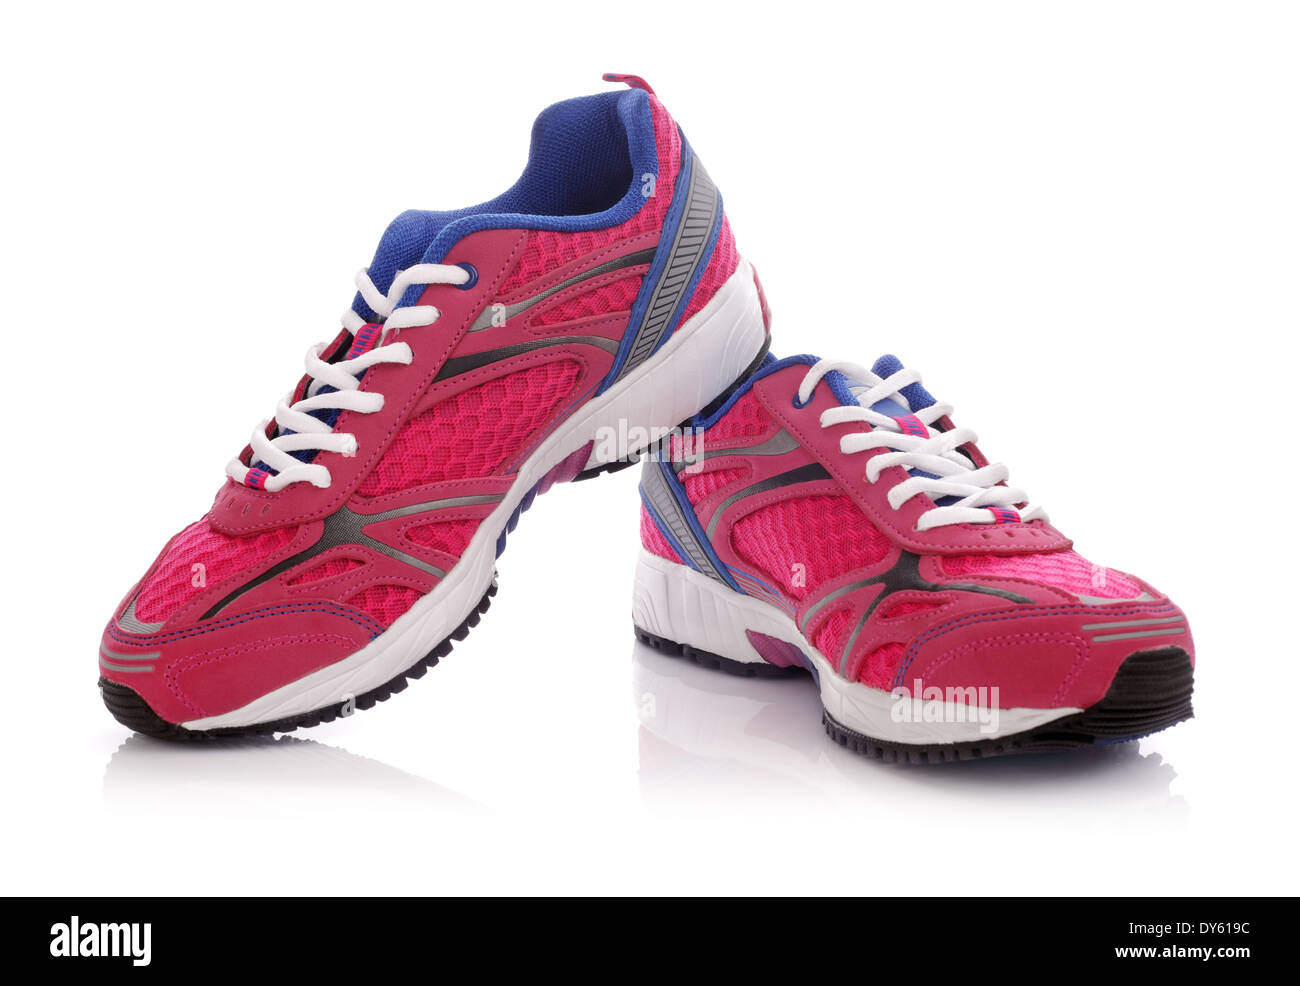 Sport shoes - Stock Image